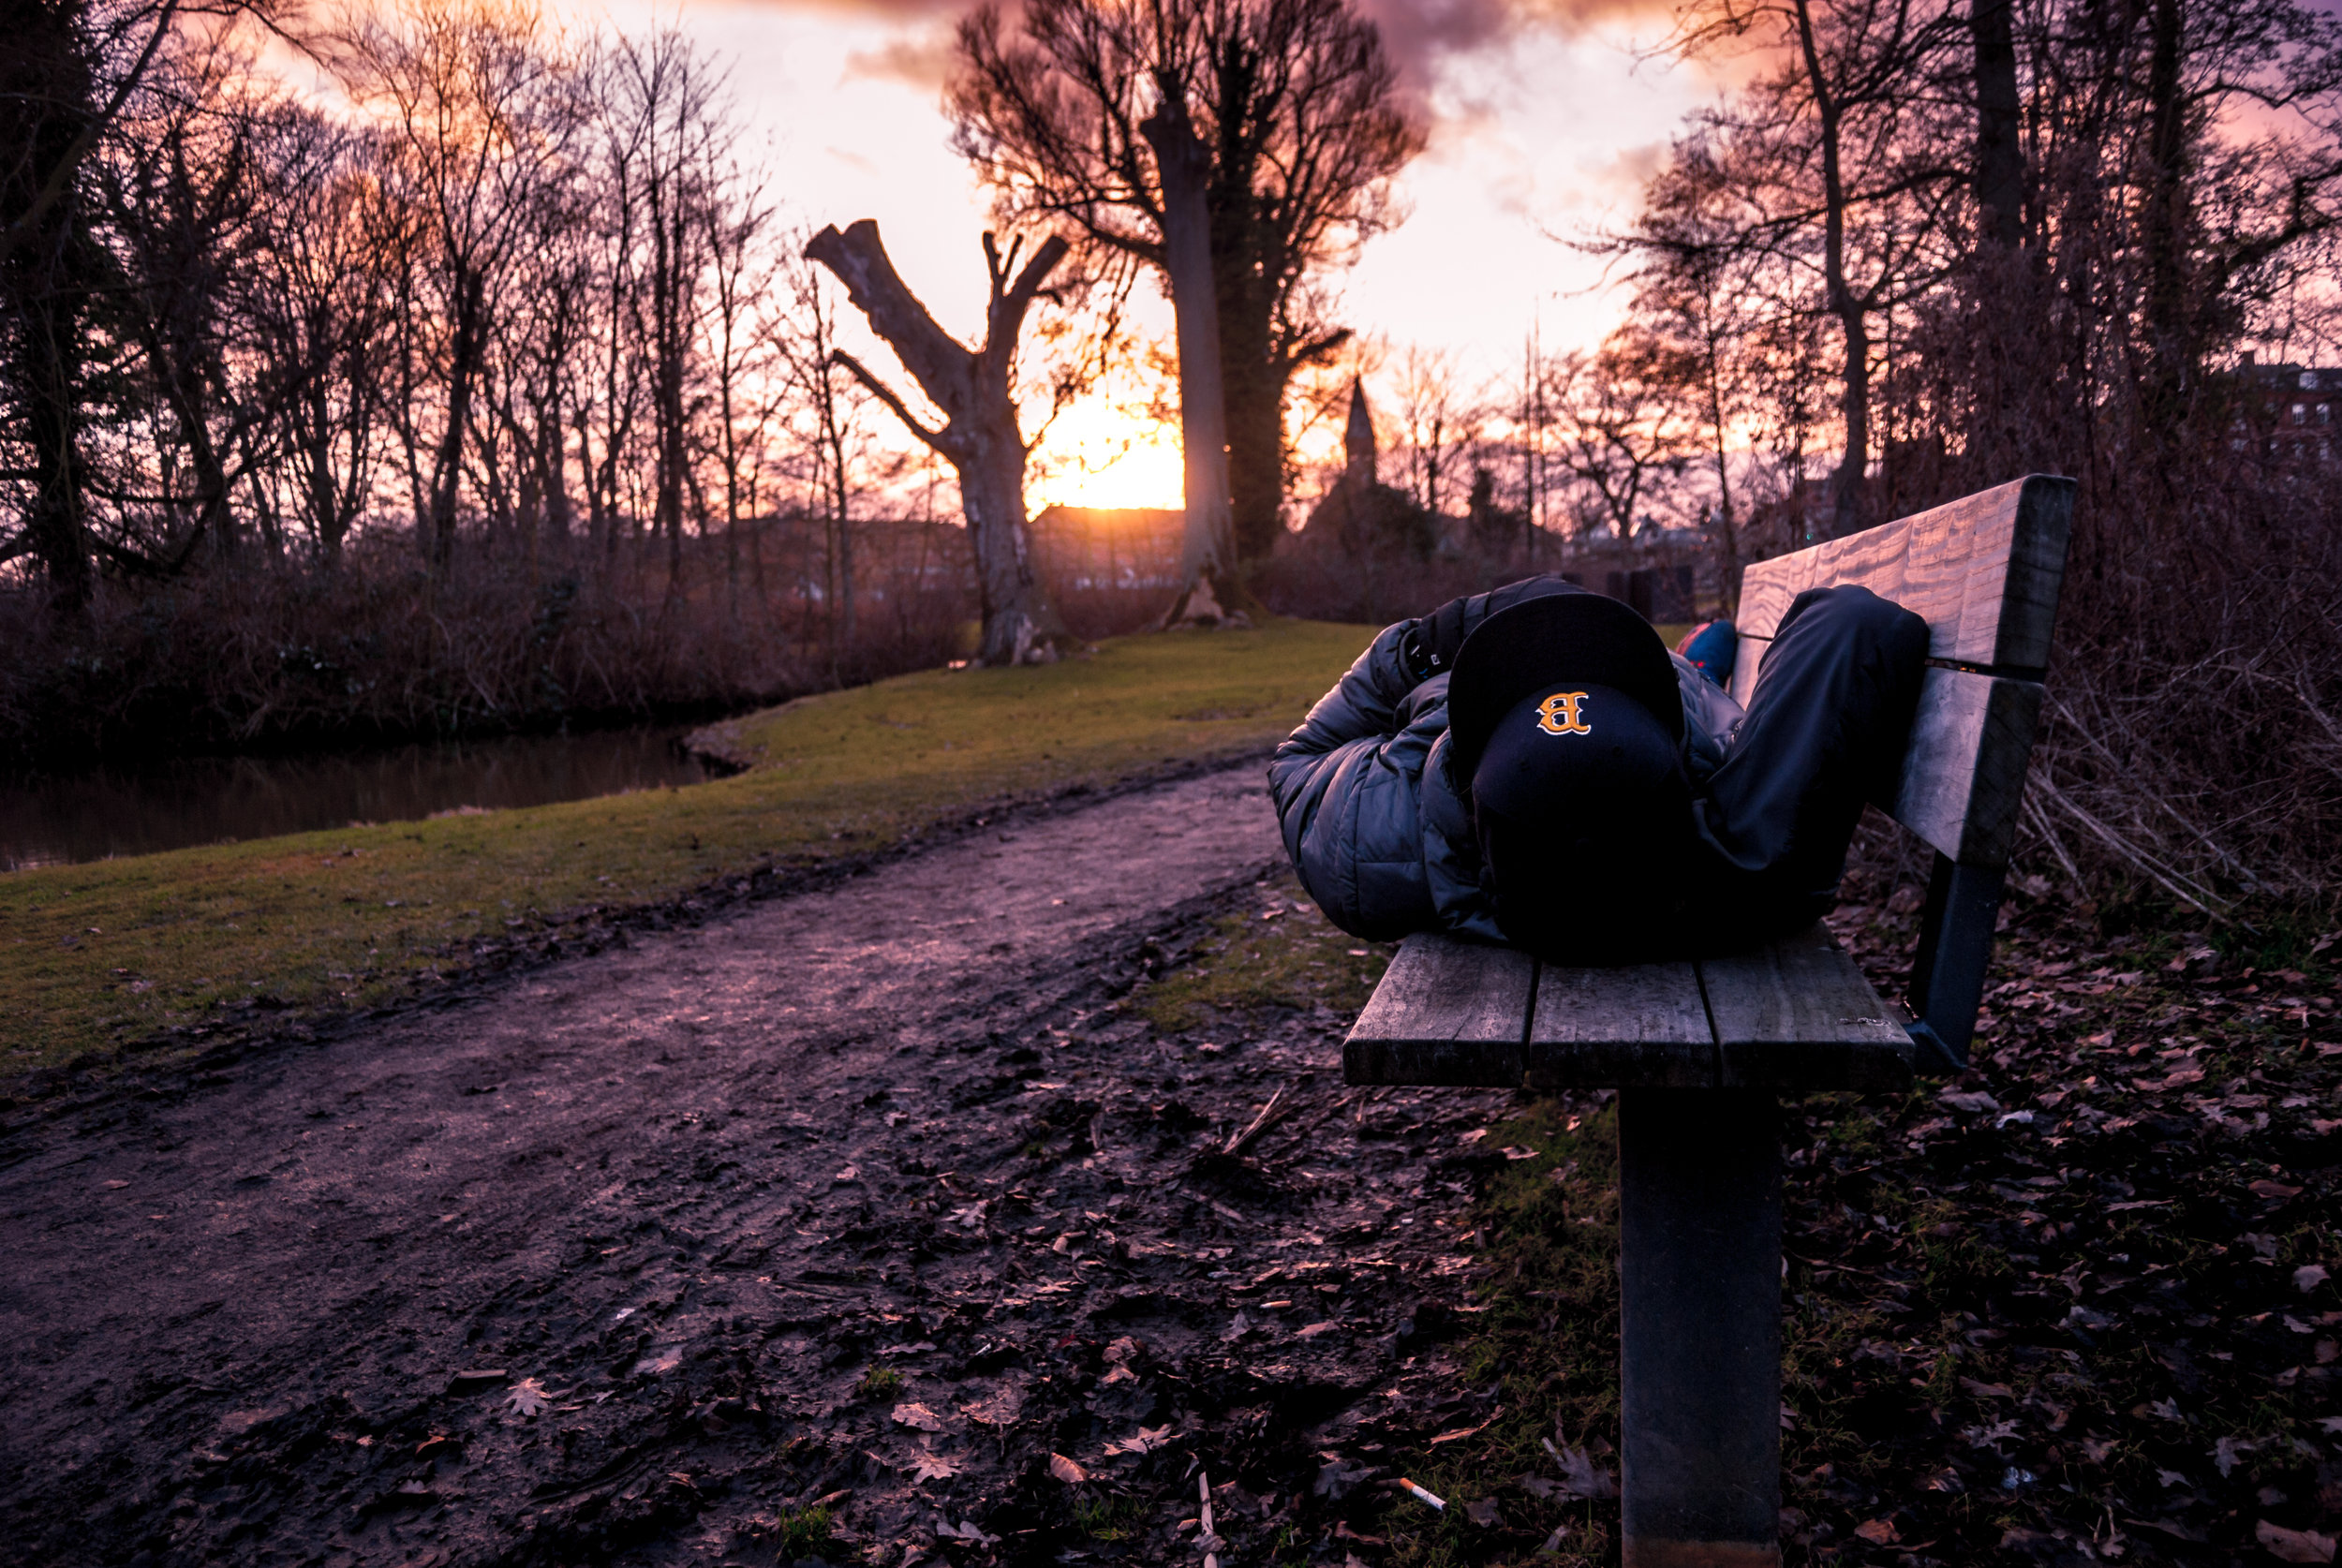 Sunset in Odense after yet another lifting session. I love to be outside in the fresh winter air. Nikon D200.